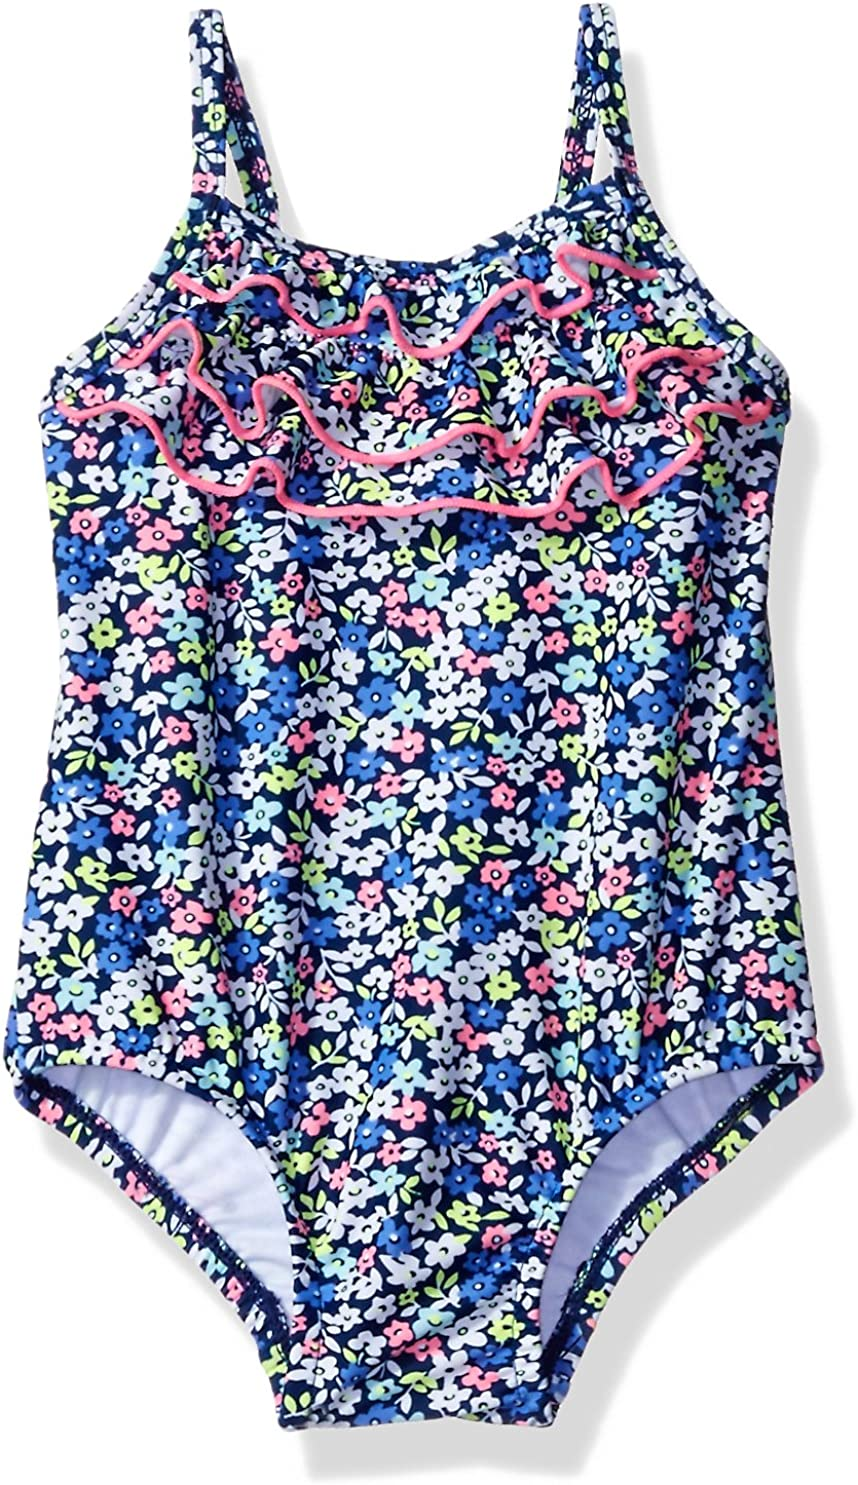 Carters Baby Girls Ditsy Floral One Piece Swimsuit